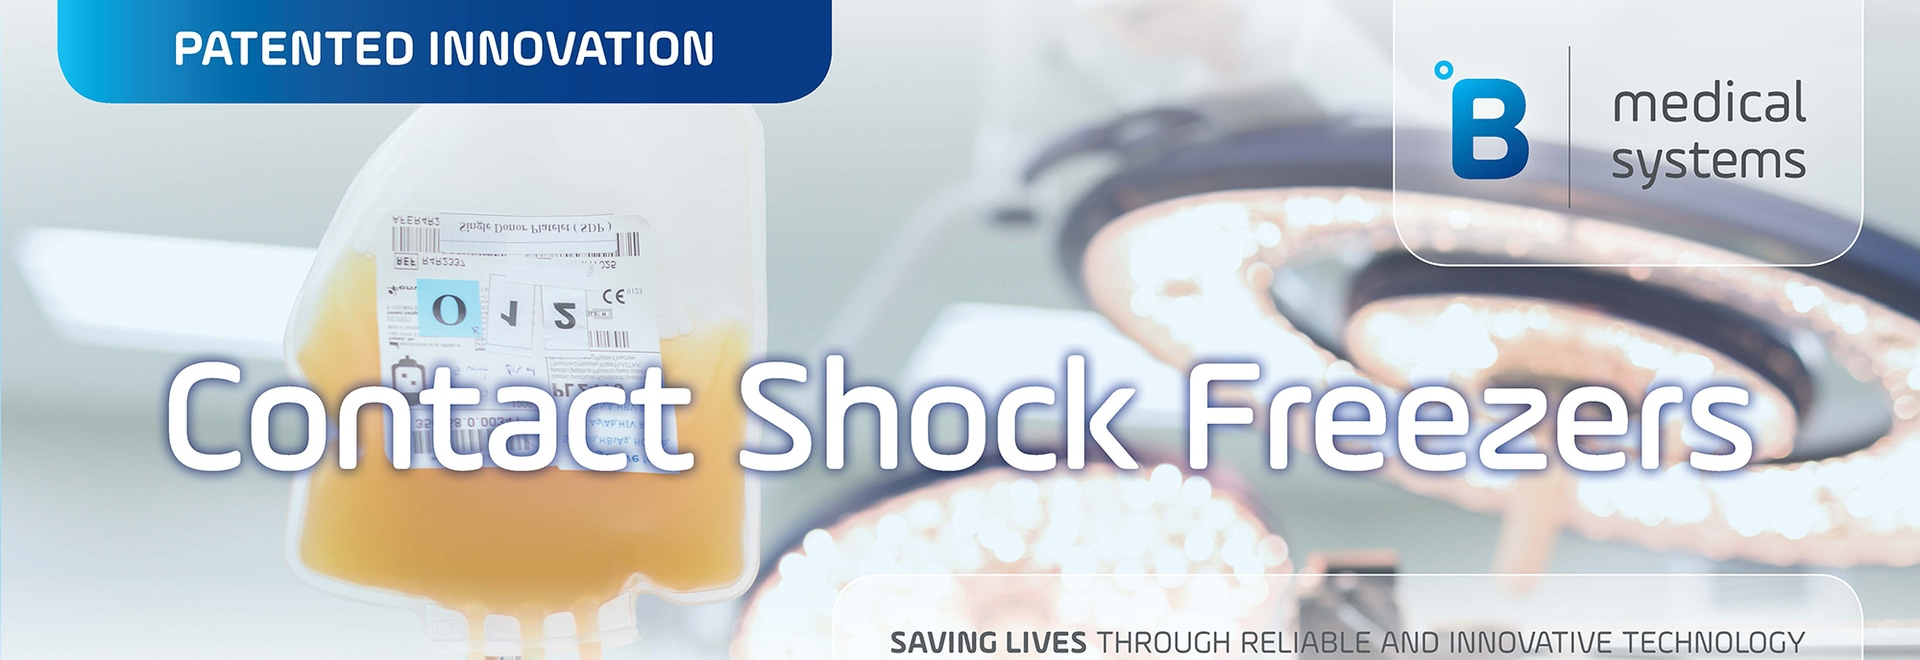 B Medical Systems' Contact Shock Freezers (infographic)